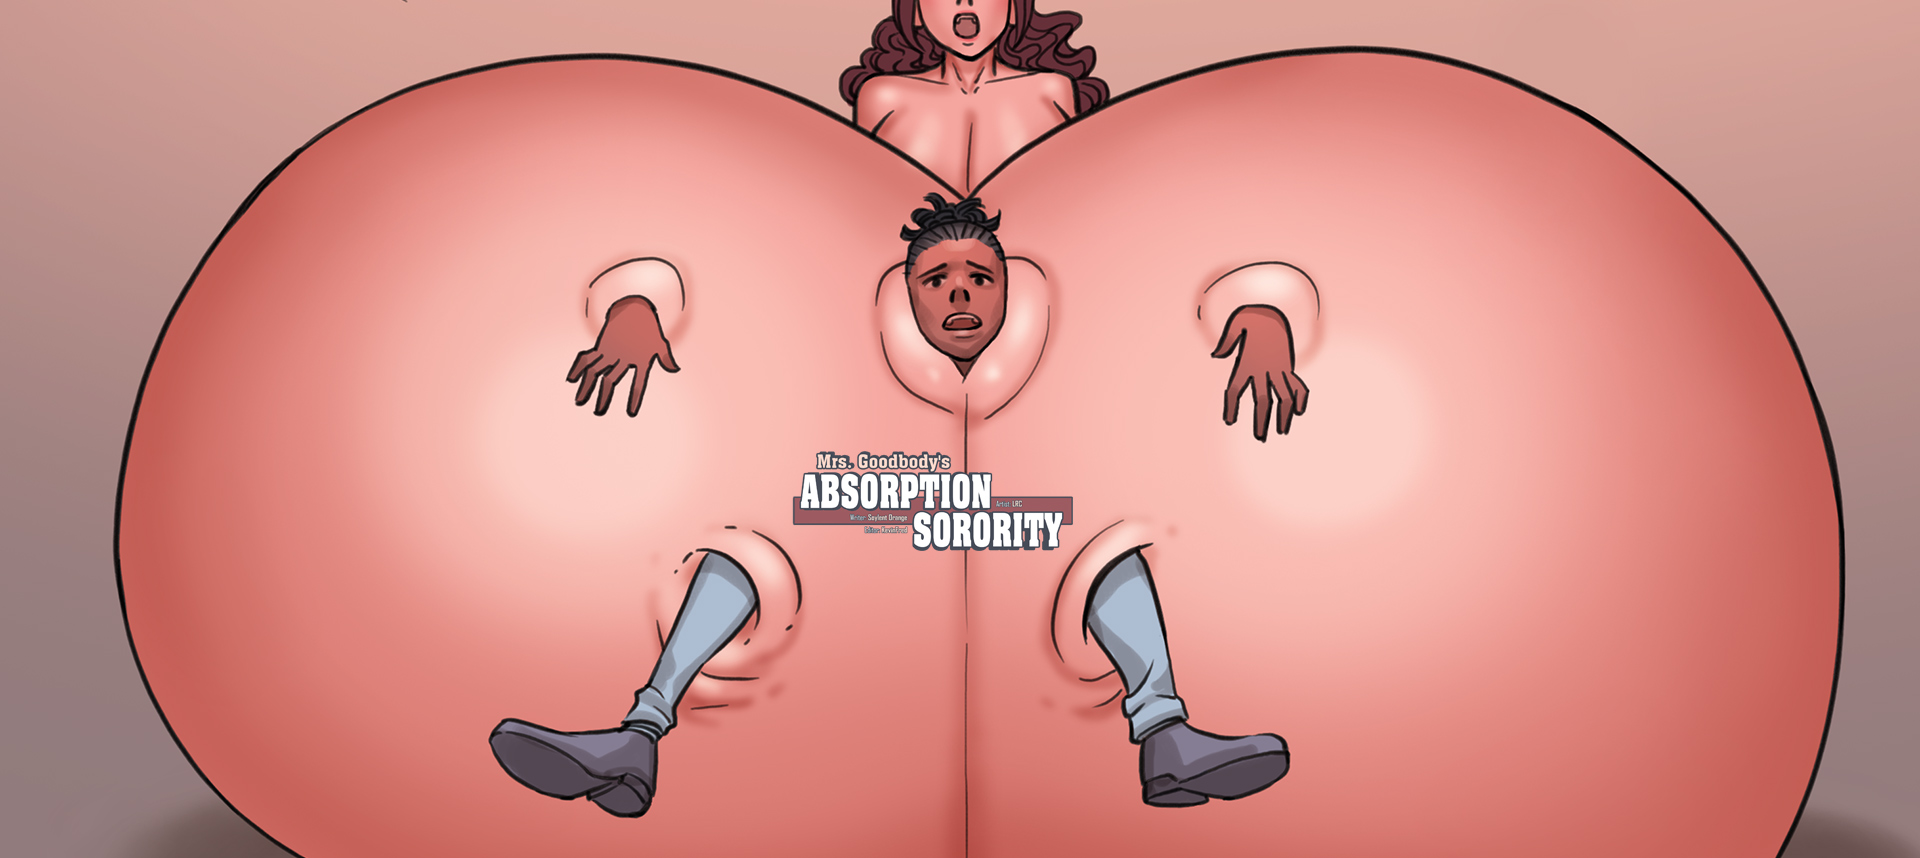 Mrs-Goodbodys-Absorption-Sorority_01-SLIDE